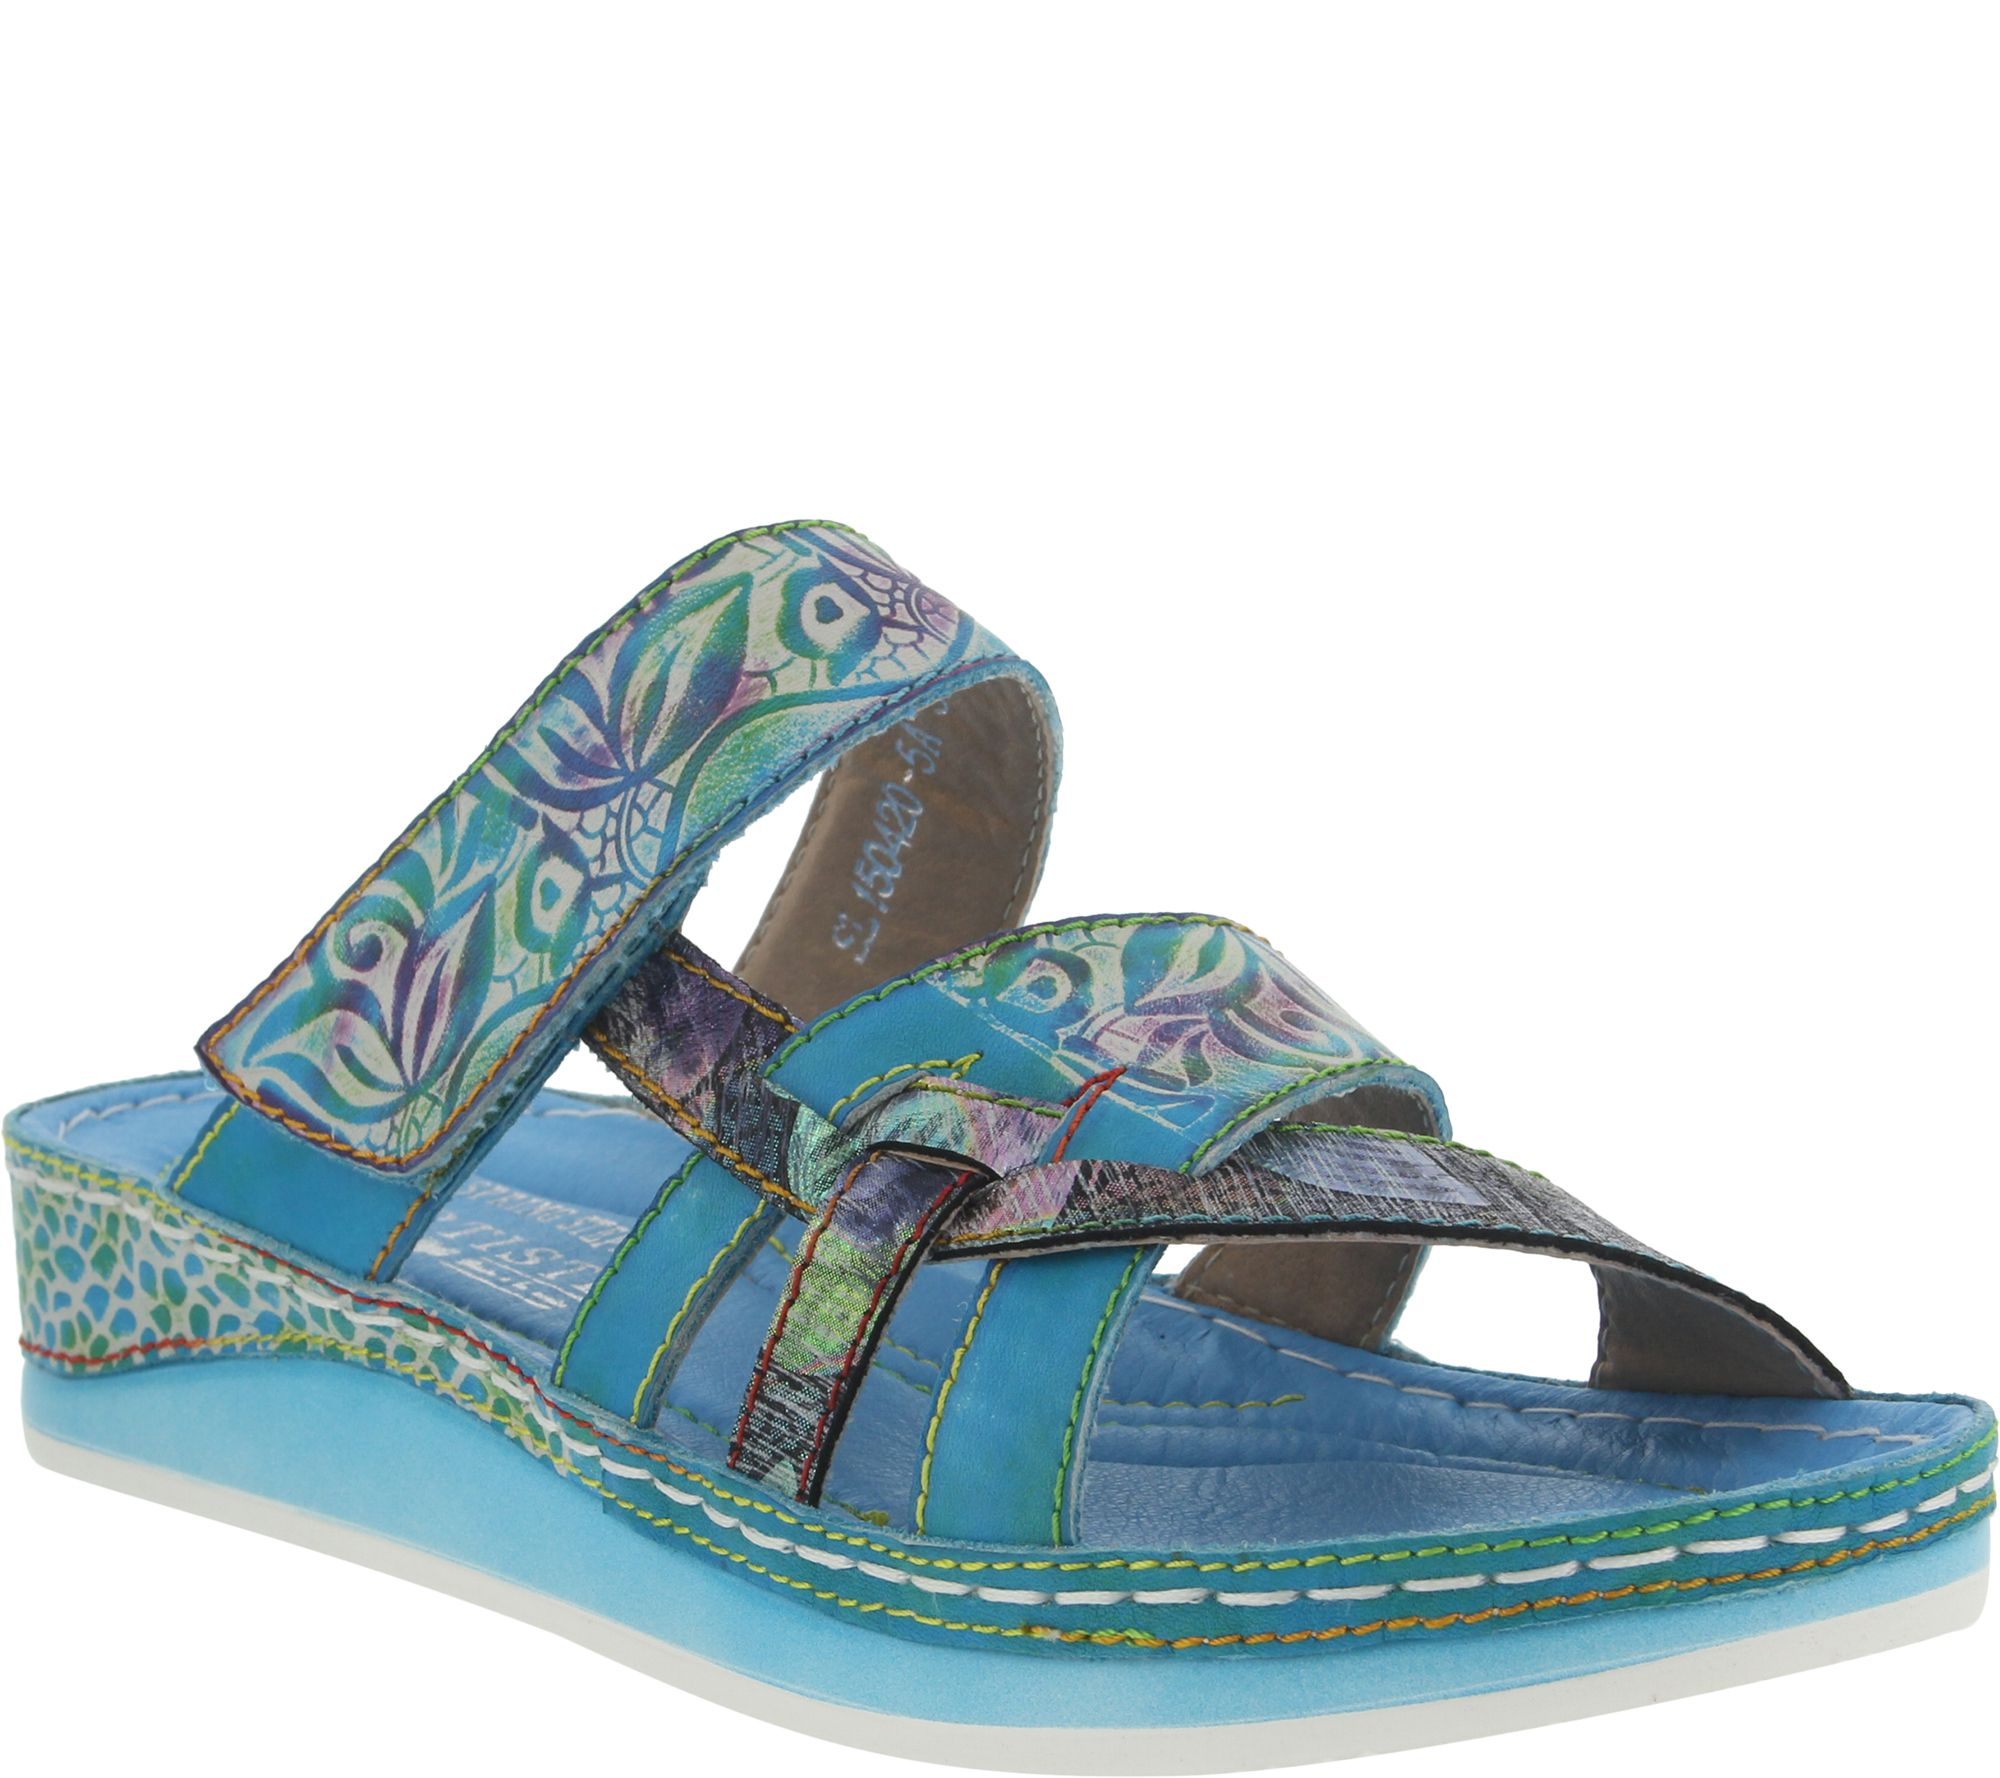 L'Artiste by Spring Step Leather Colorblock Sandal - Caiman - A356652